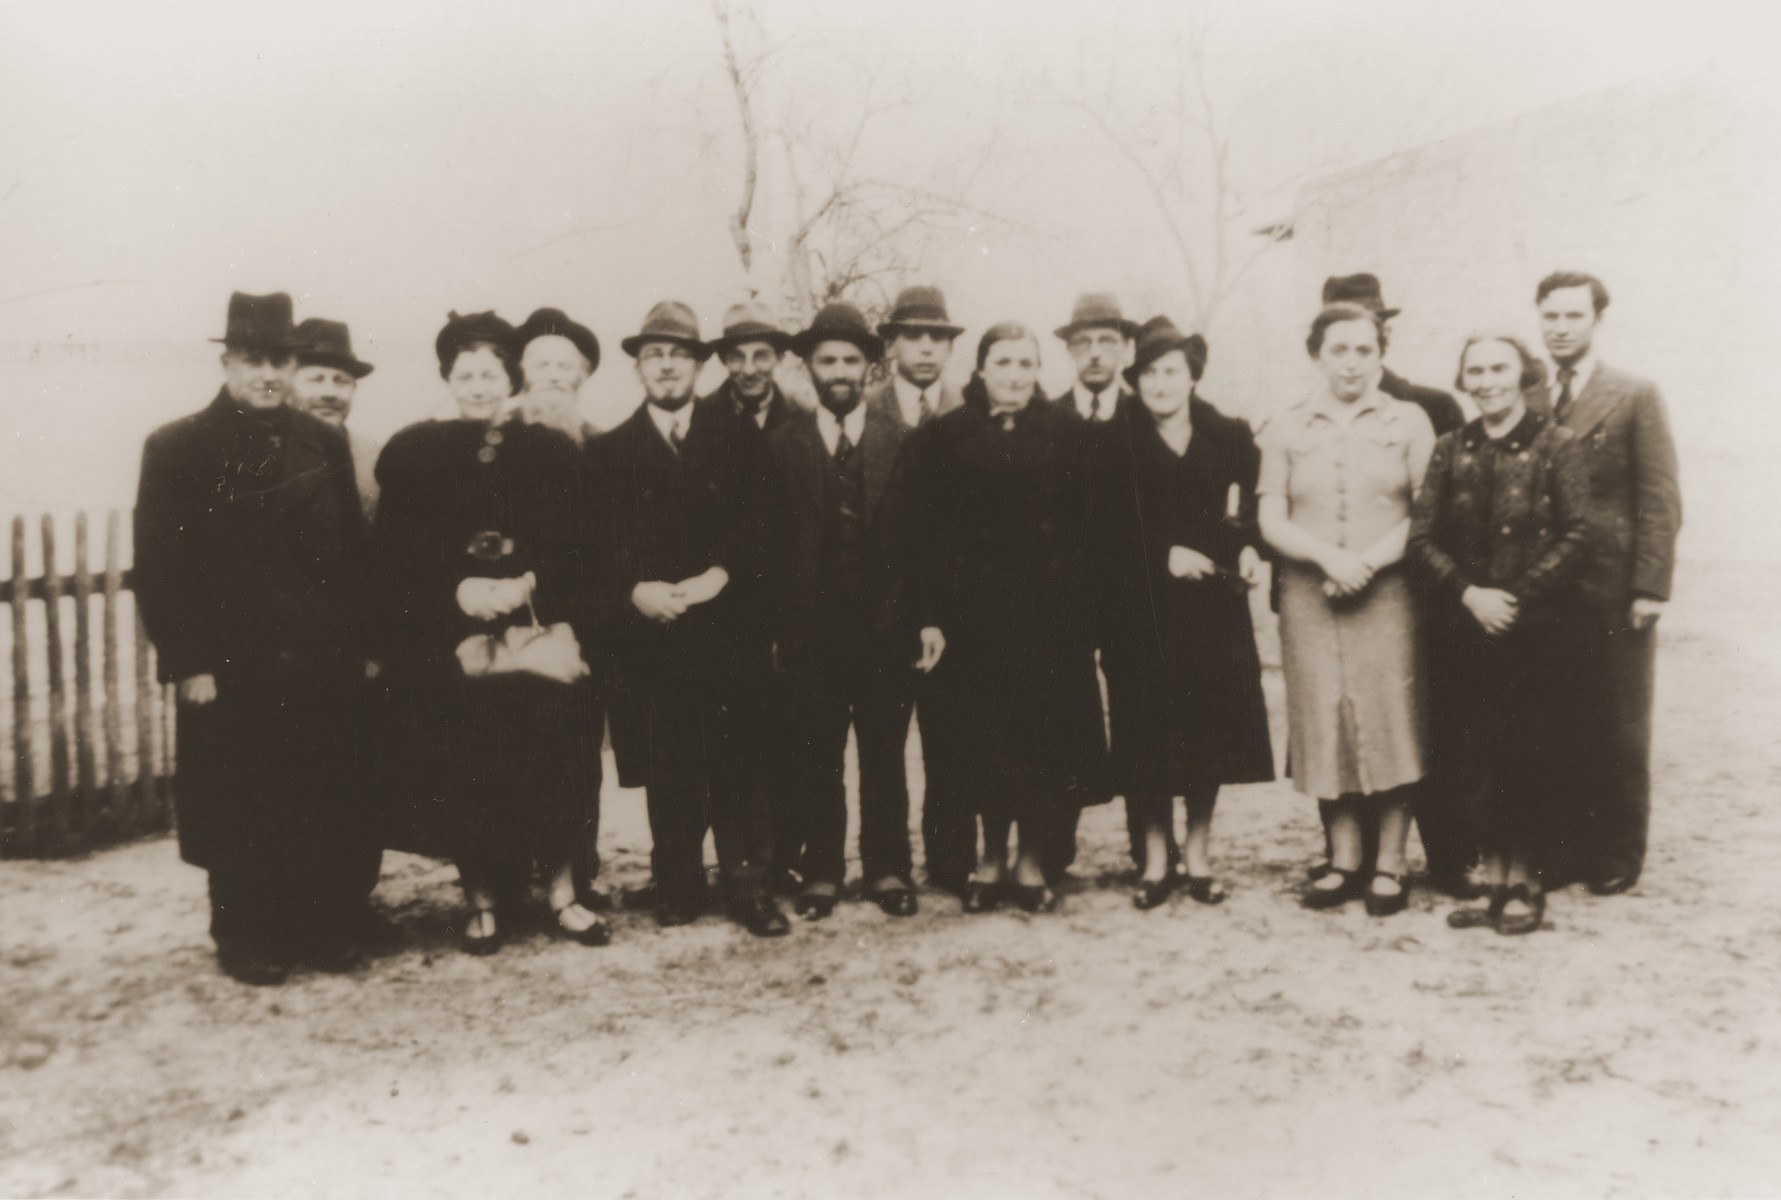 Group portrait of Jews of Polish nationality (relatives of the donor) who were expelled from Nuremberg to the Polish border town of Zbaszyn.  Pictured from left to right are: Leo Fallmann; Rosa Fallmann; Mr. Auerbach; Mr. Zahn; unknown; unknown; Chaim Kupfermann; Anni Kupfermann; Simon Wassermann; unknown; Regina Holzer; and Bertha Holzer.